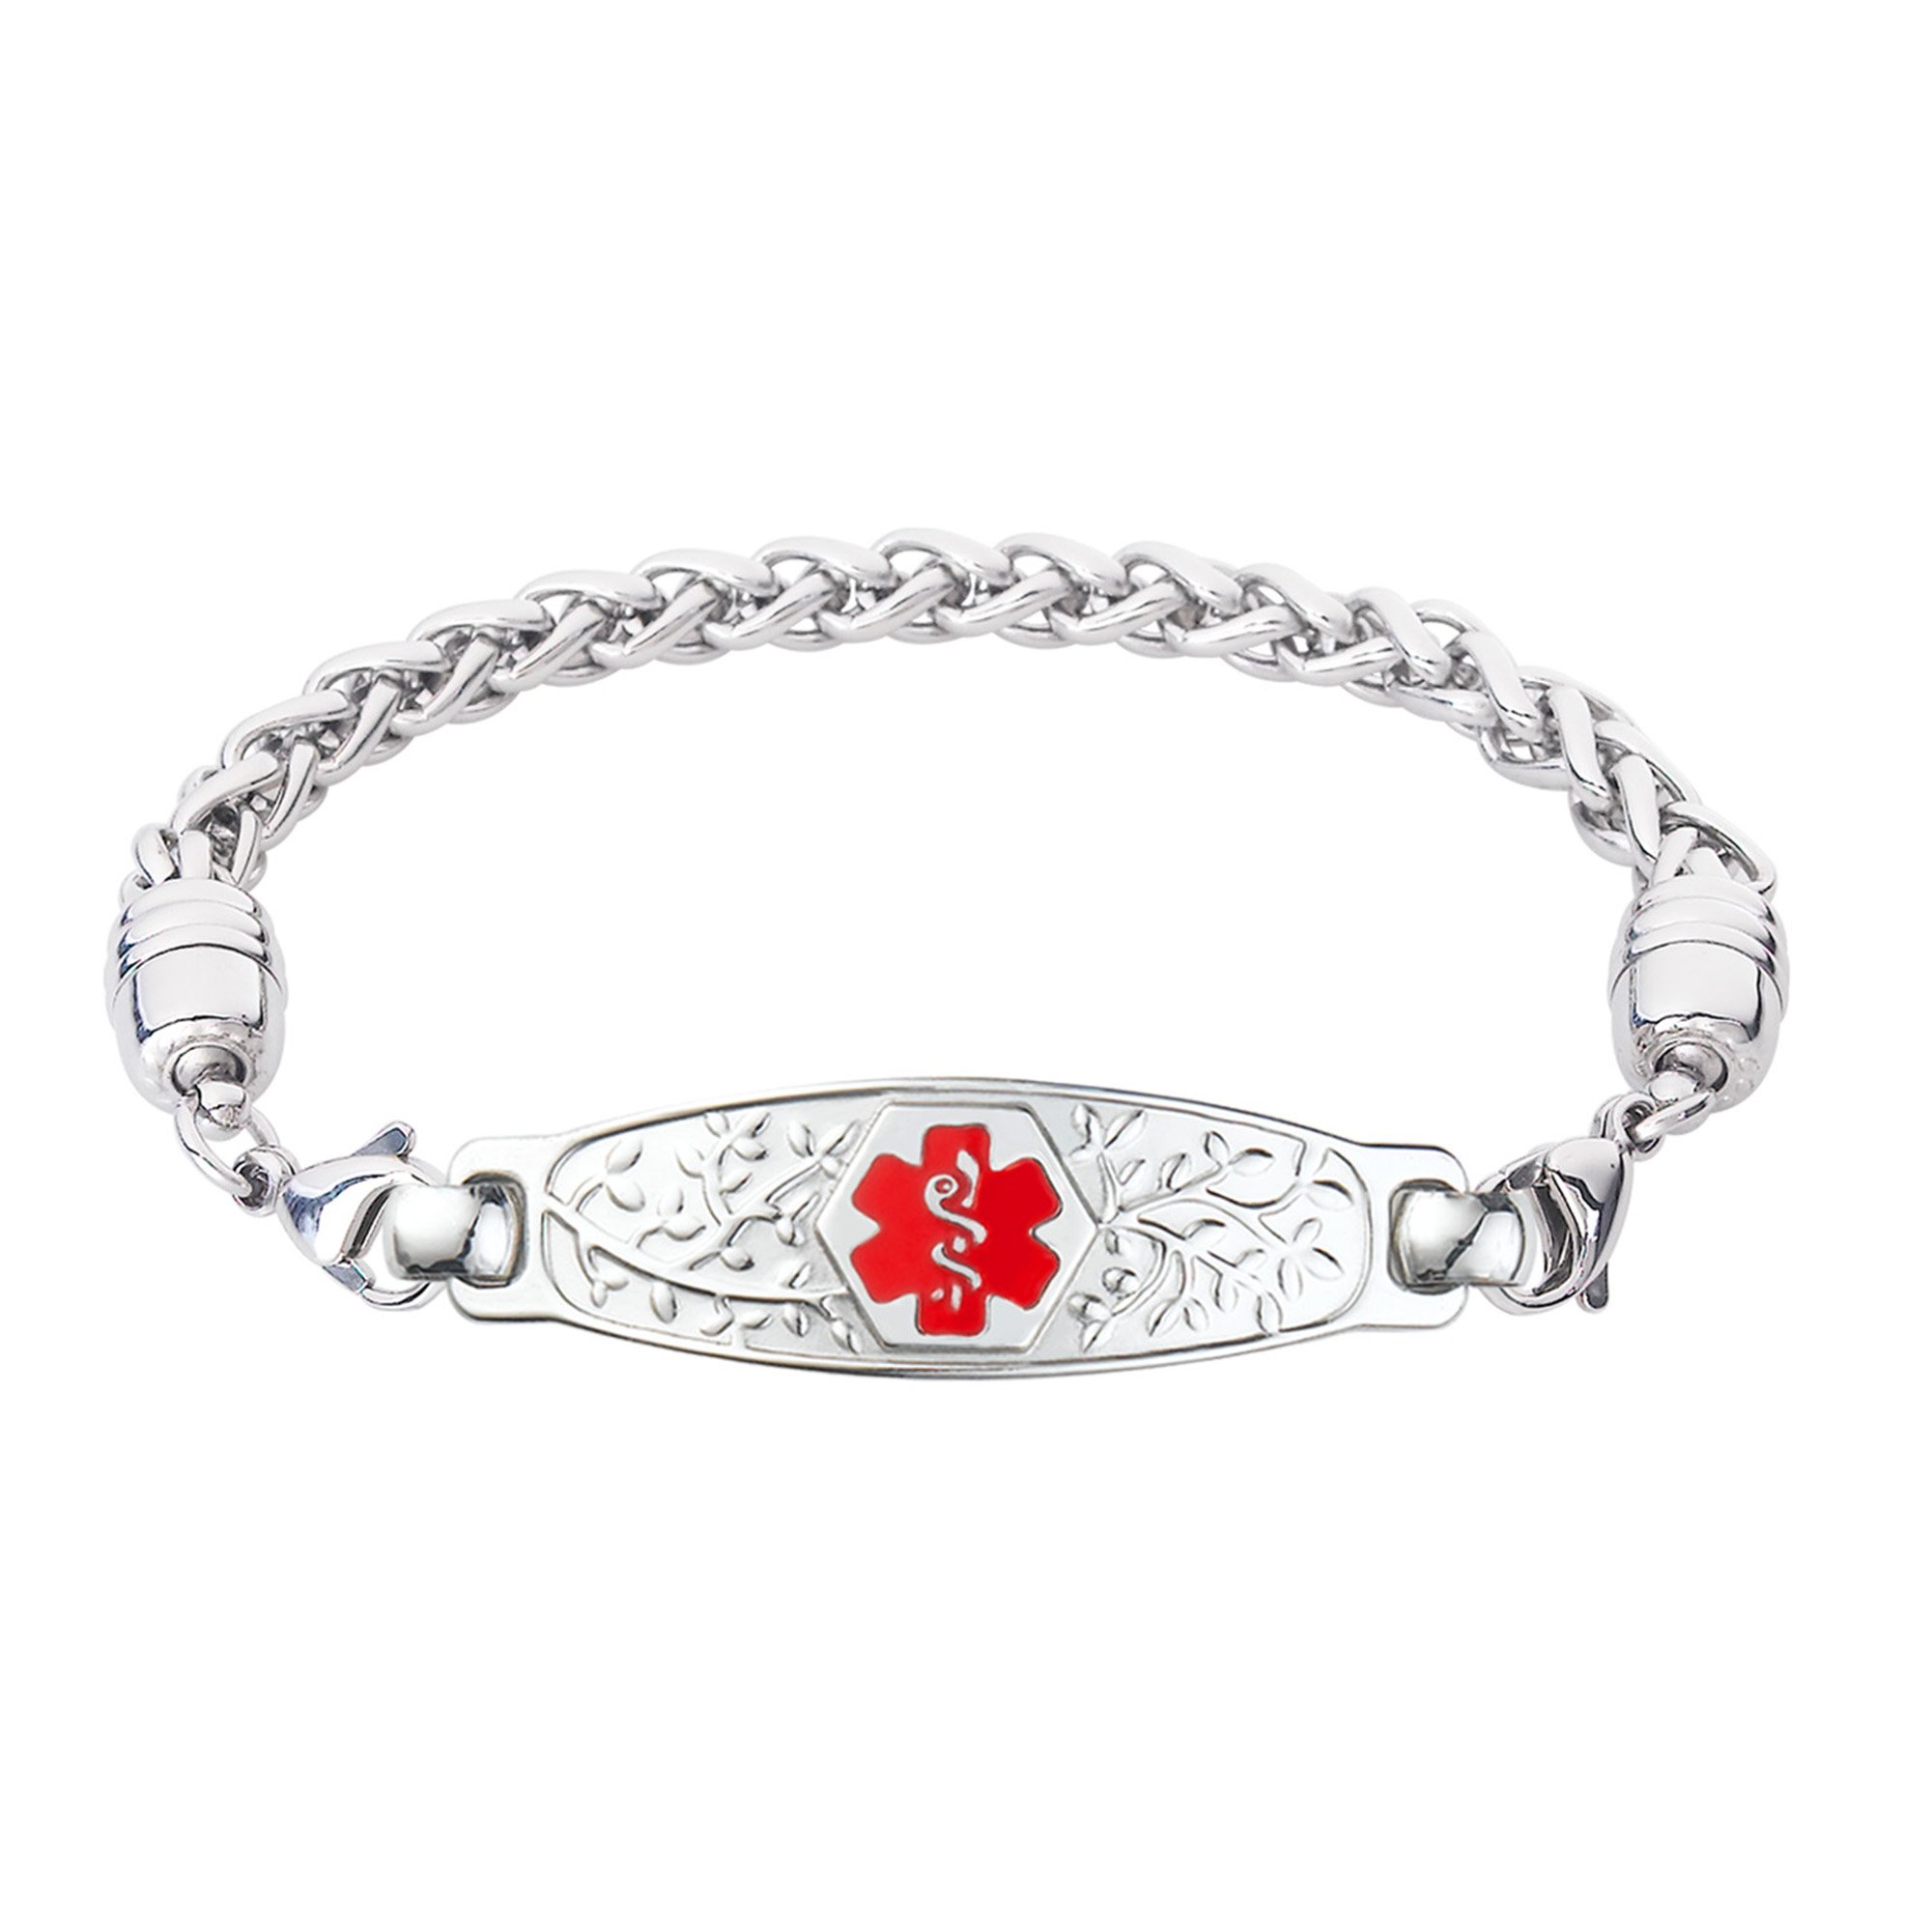 Divoti Custom Engraved Beautiful Olive Medical Alert Bracelet -Wheat Stainless -Red-7.0''